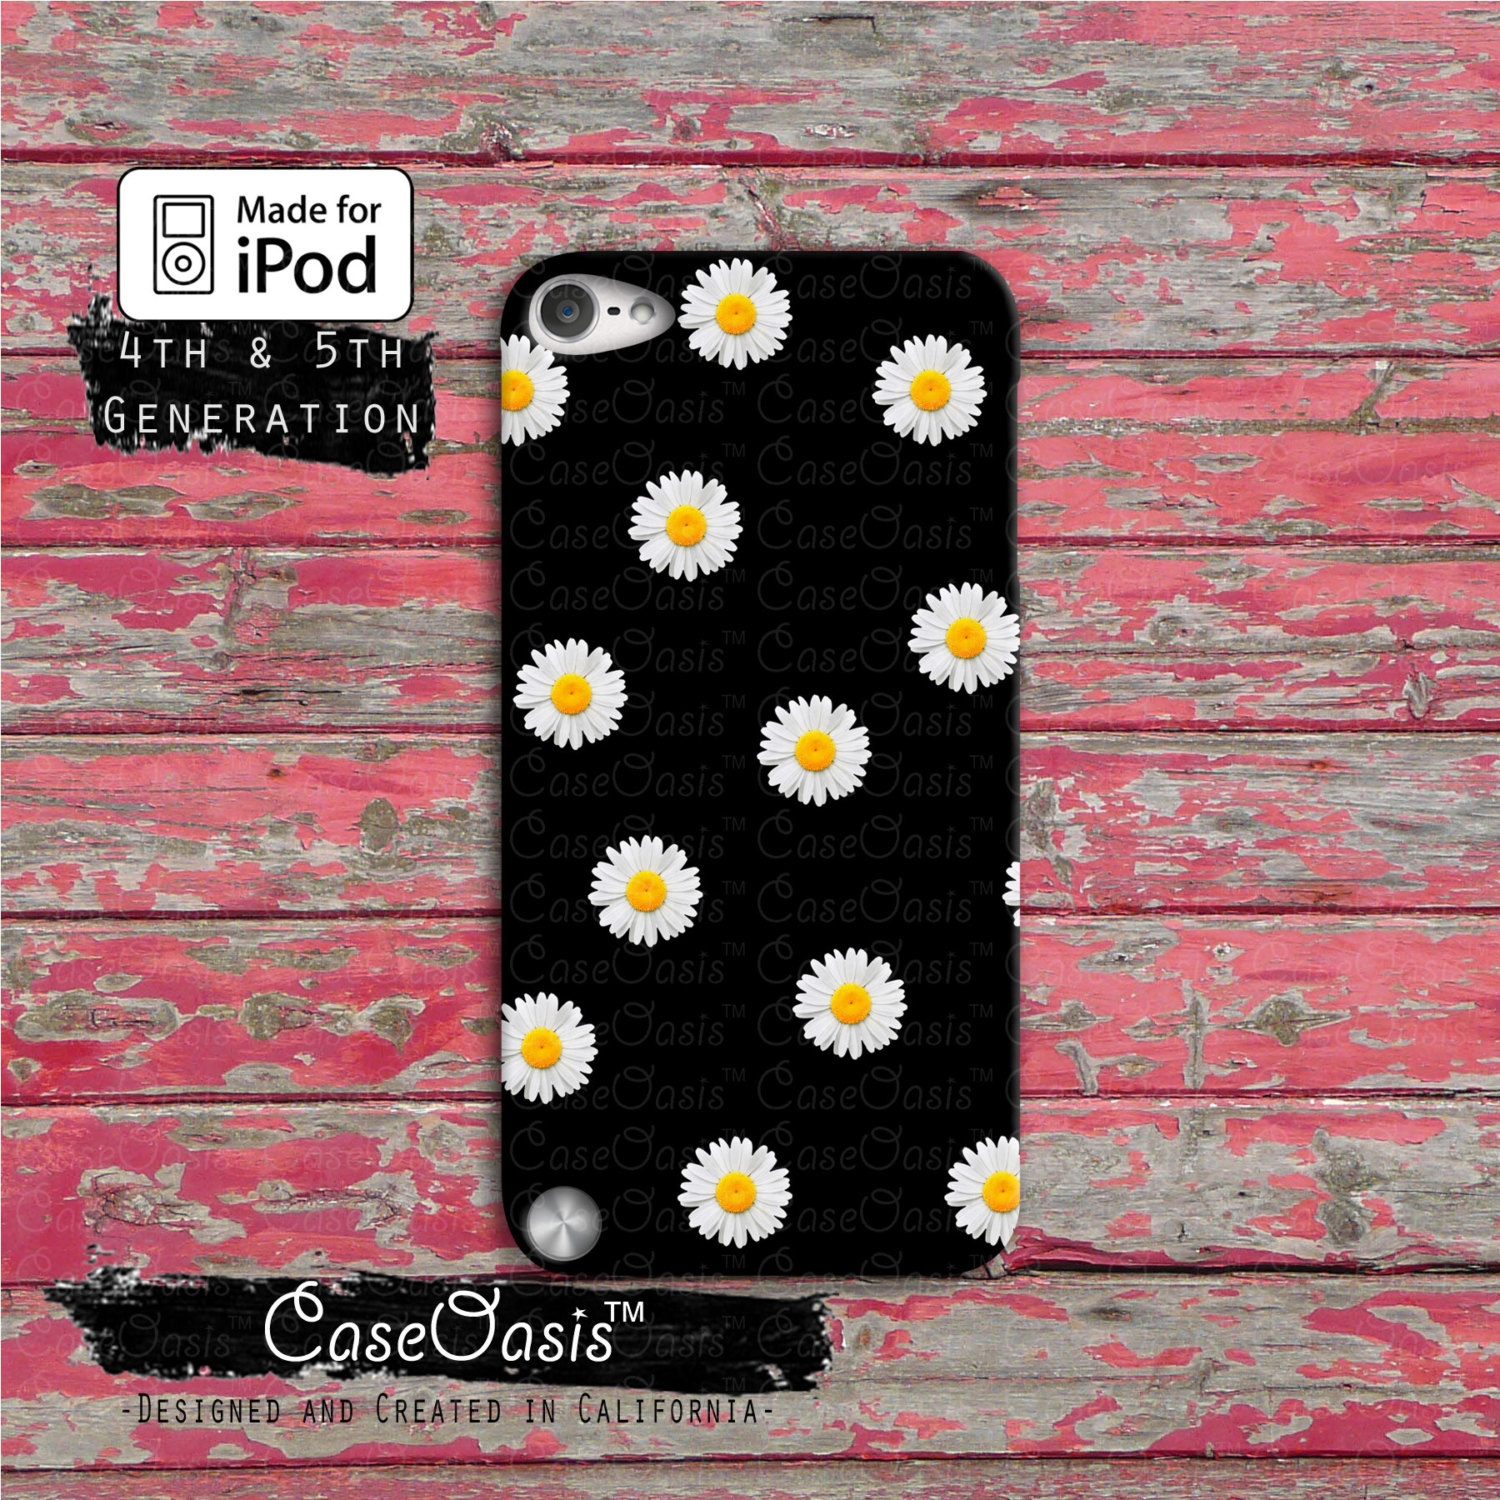 Daisy flower pattern cute yellow tumblr black ipod touch 4th daisy flower pattern cute yellow tumblr black ipod touch 4th generation or ipod touch 5th generation izmirmasajfo